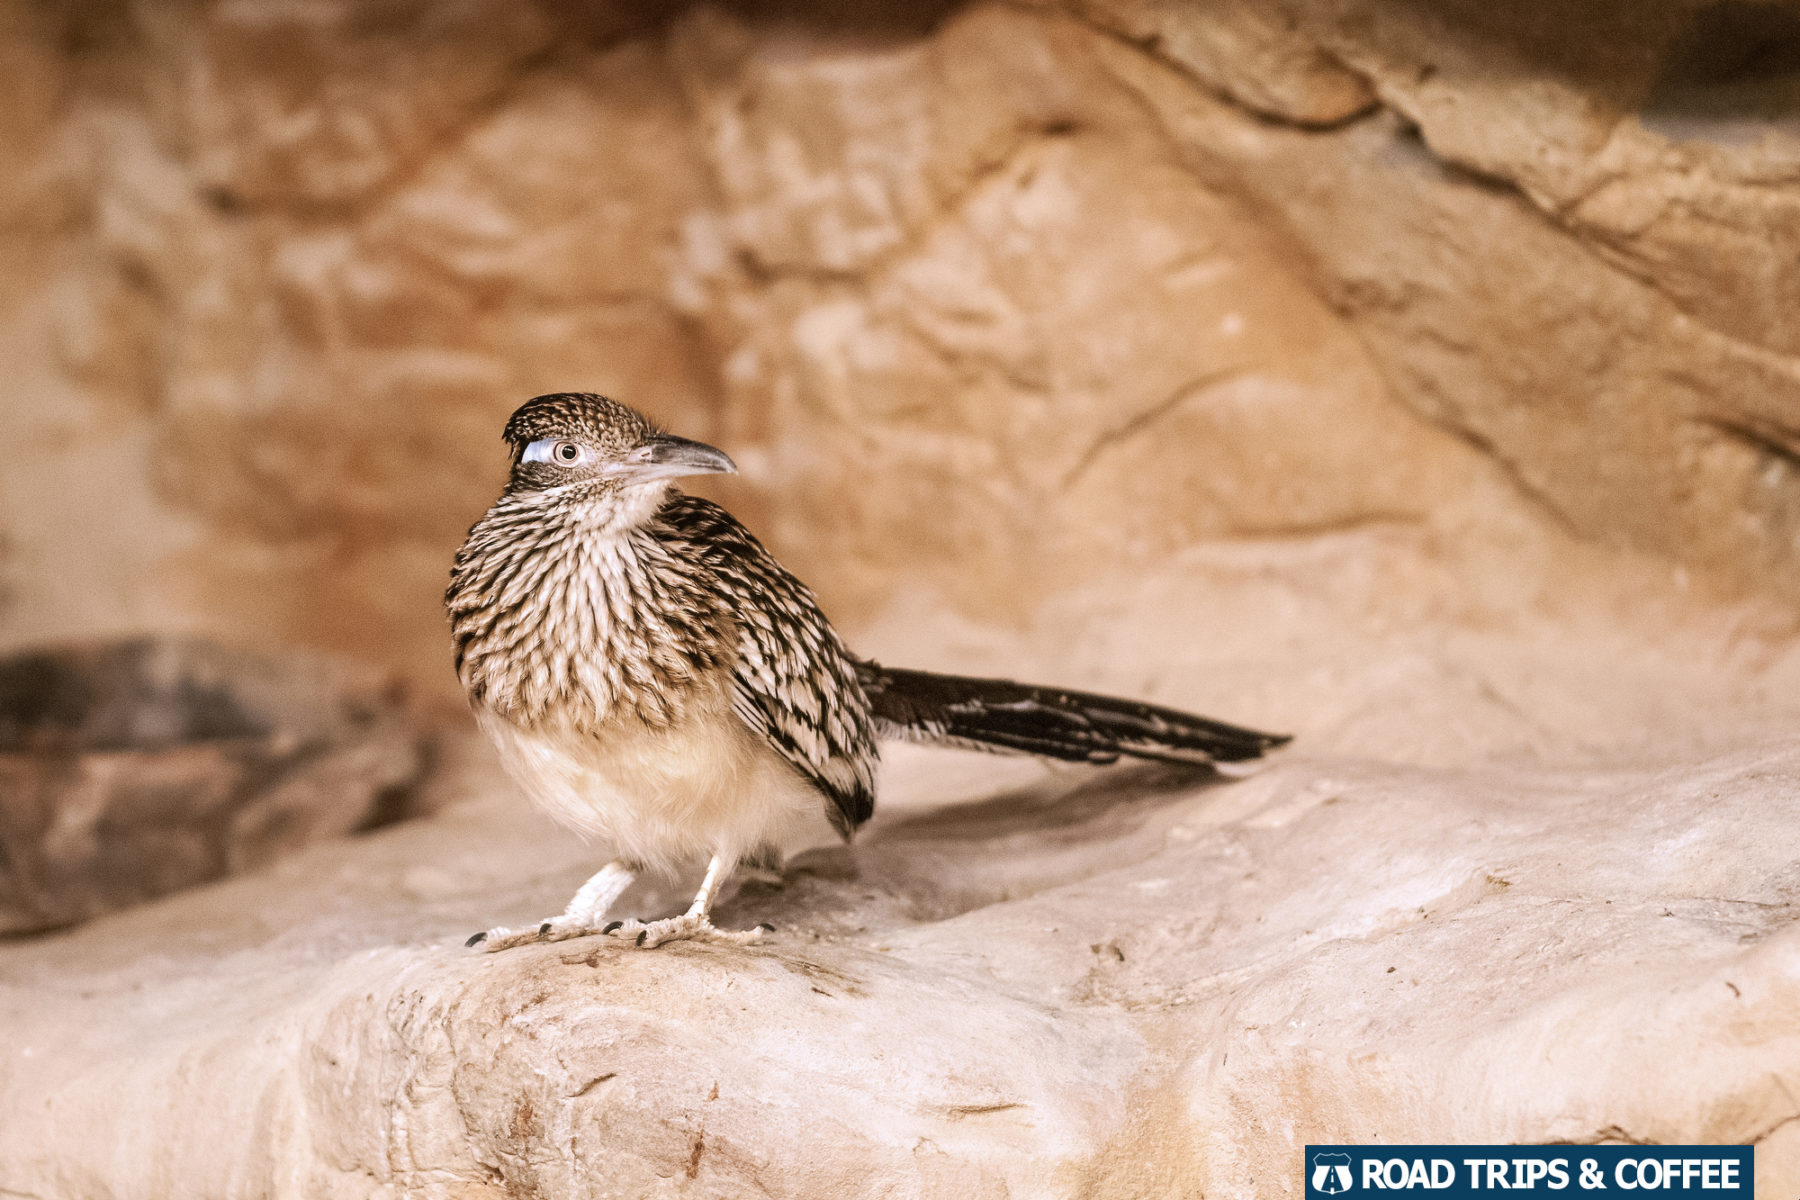 A small brown road runner bird at the Chattanooga Zoo in Chattanooga, Tennessee